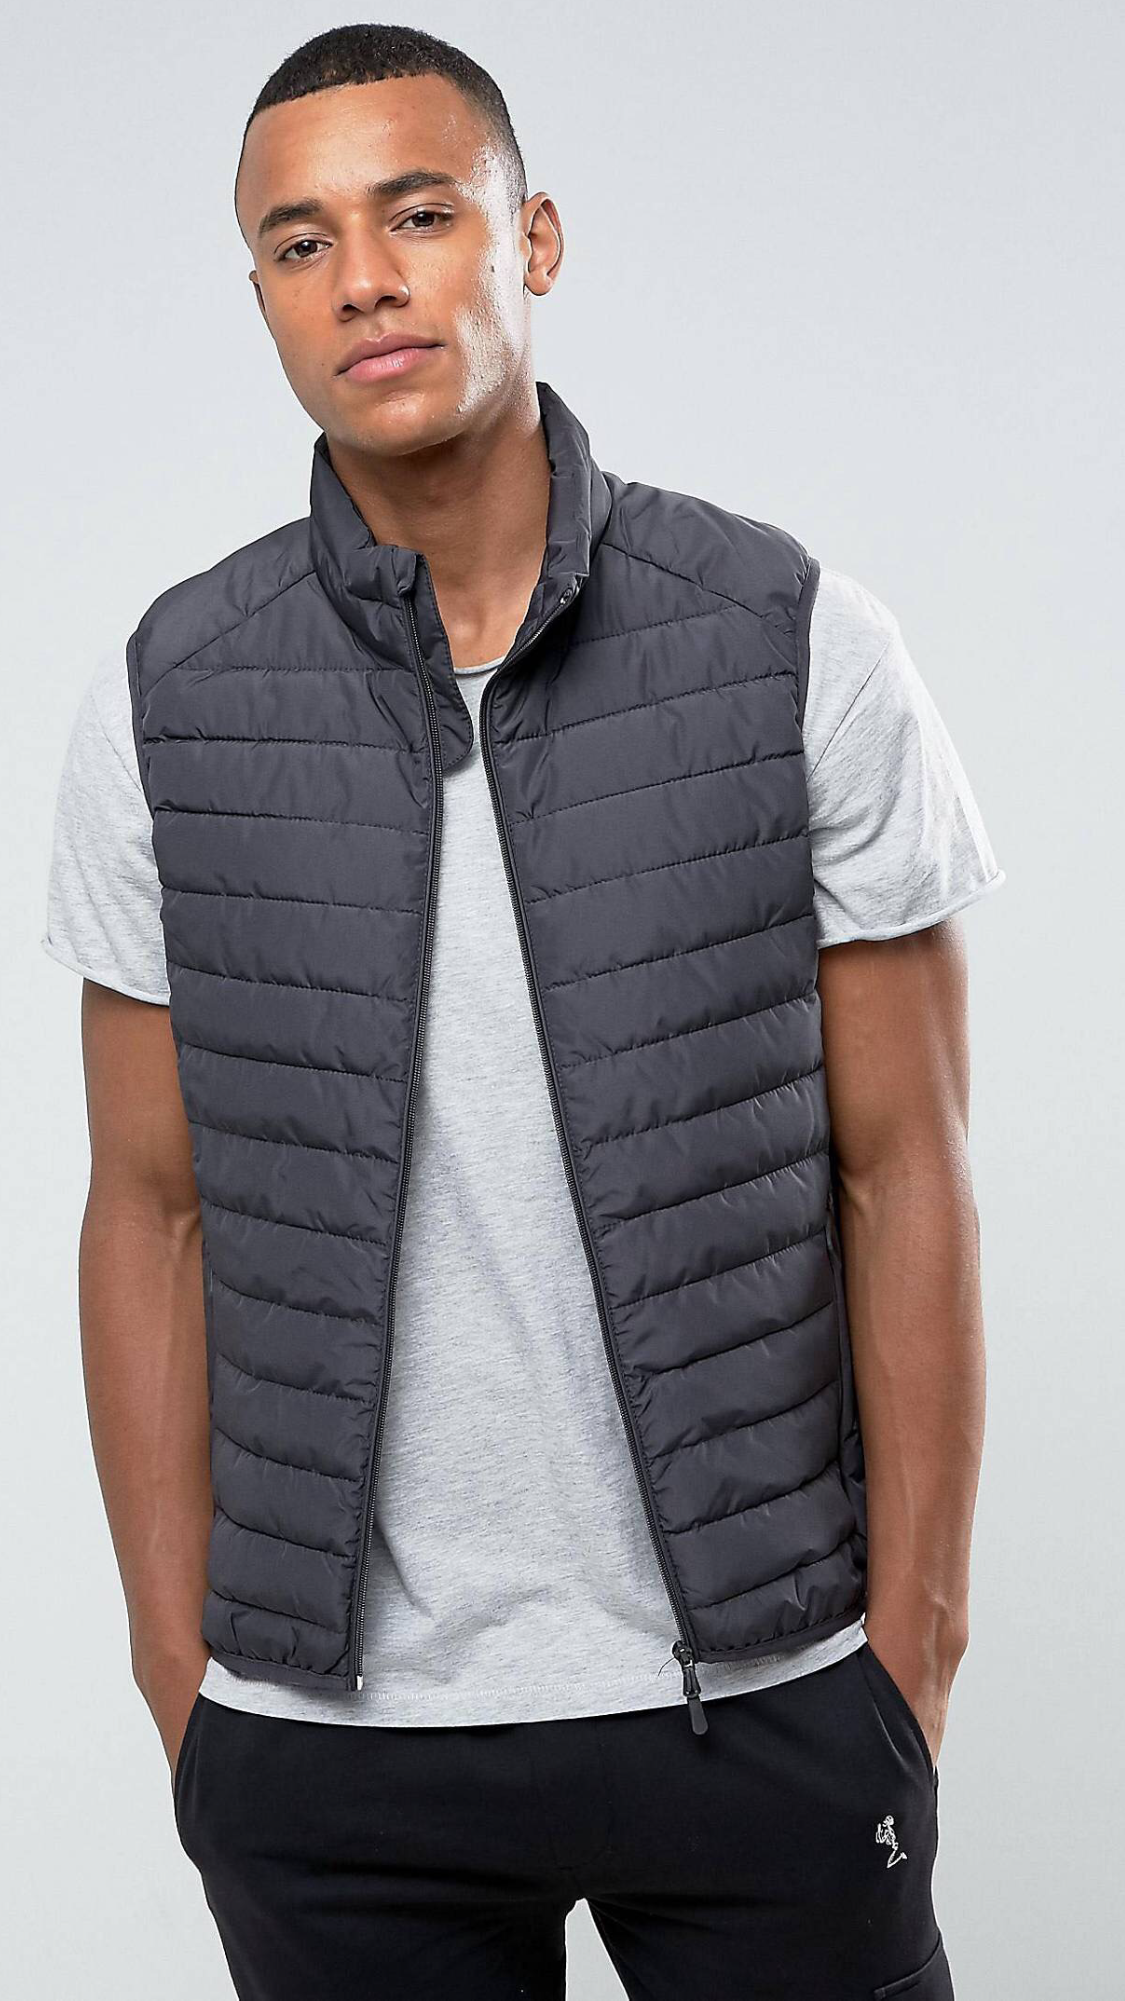 a1025d970f Pin by Notorious Carter on Fashion - Gilets (Padded Vests) in 2018 ...